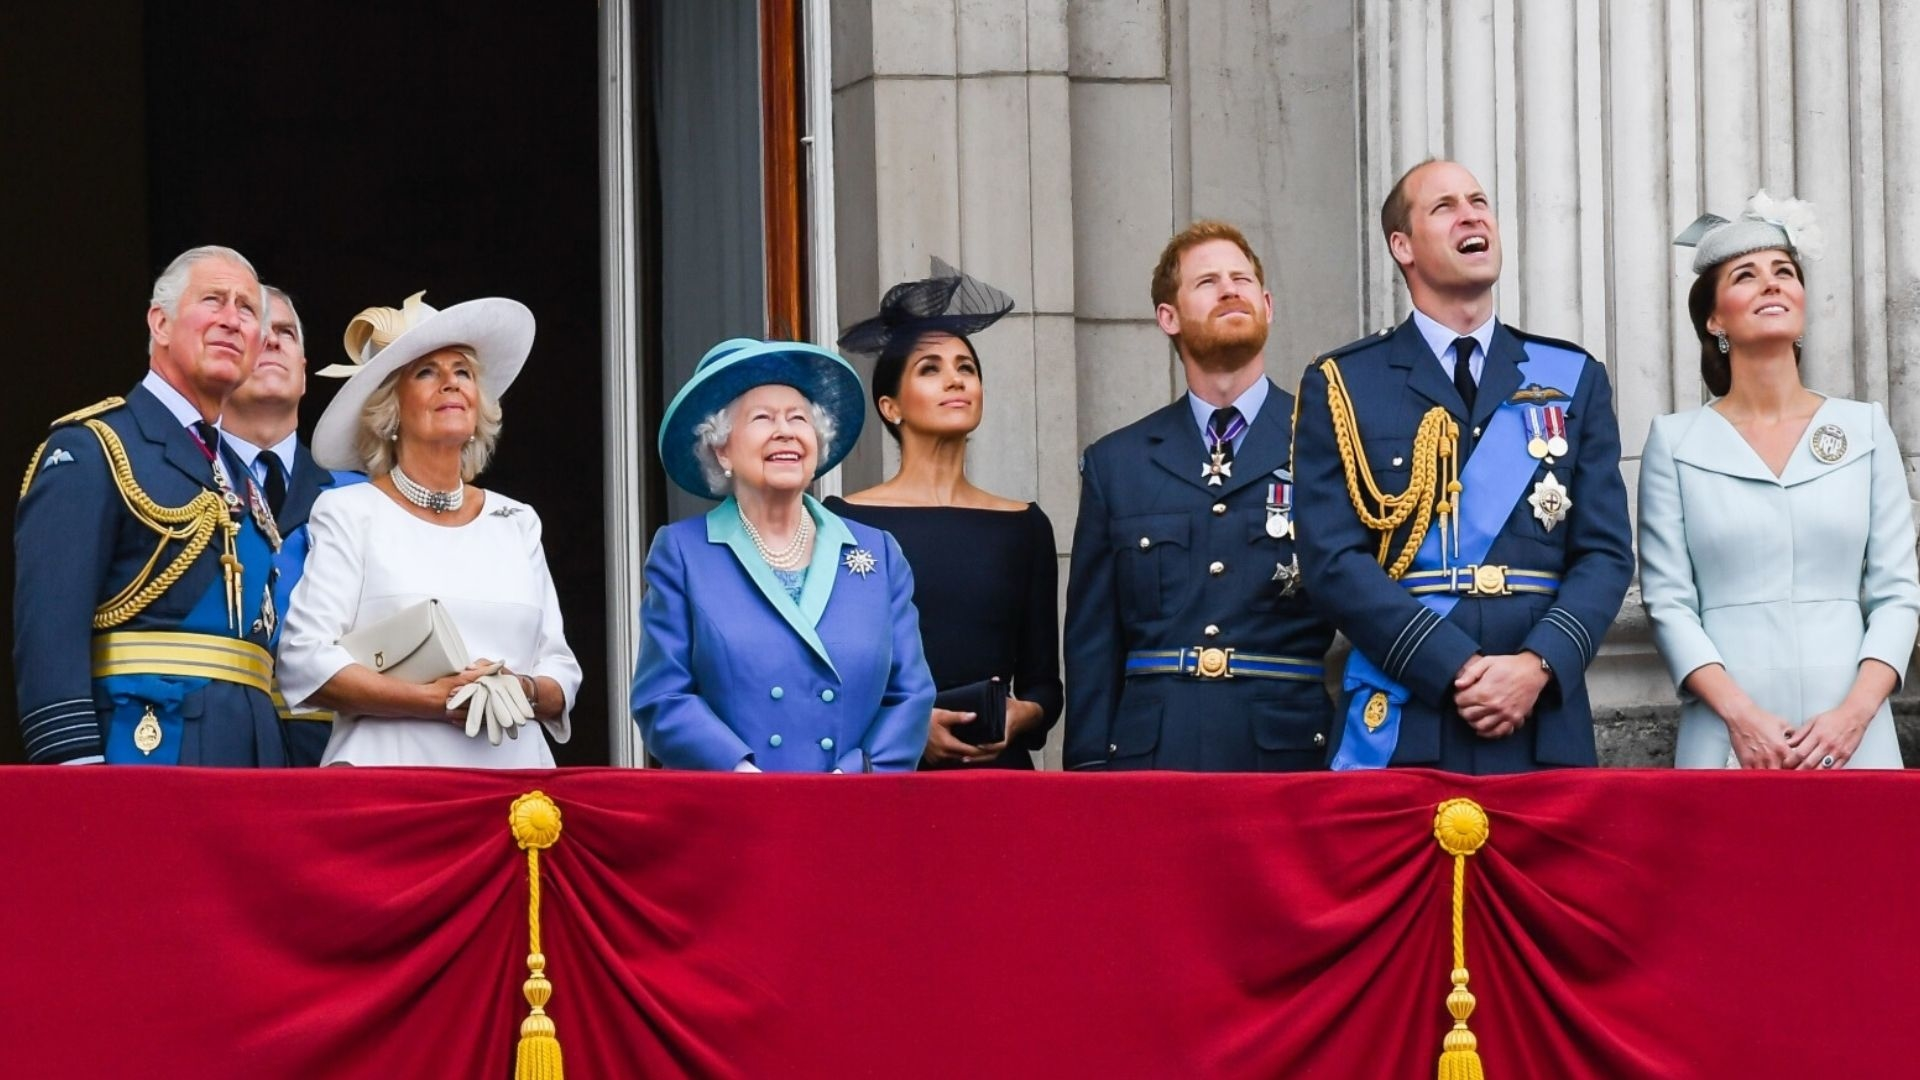 A Comedy Show About The British Royal Family Is Coming Very Soon